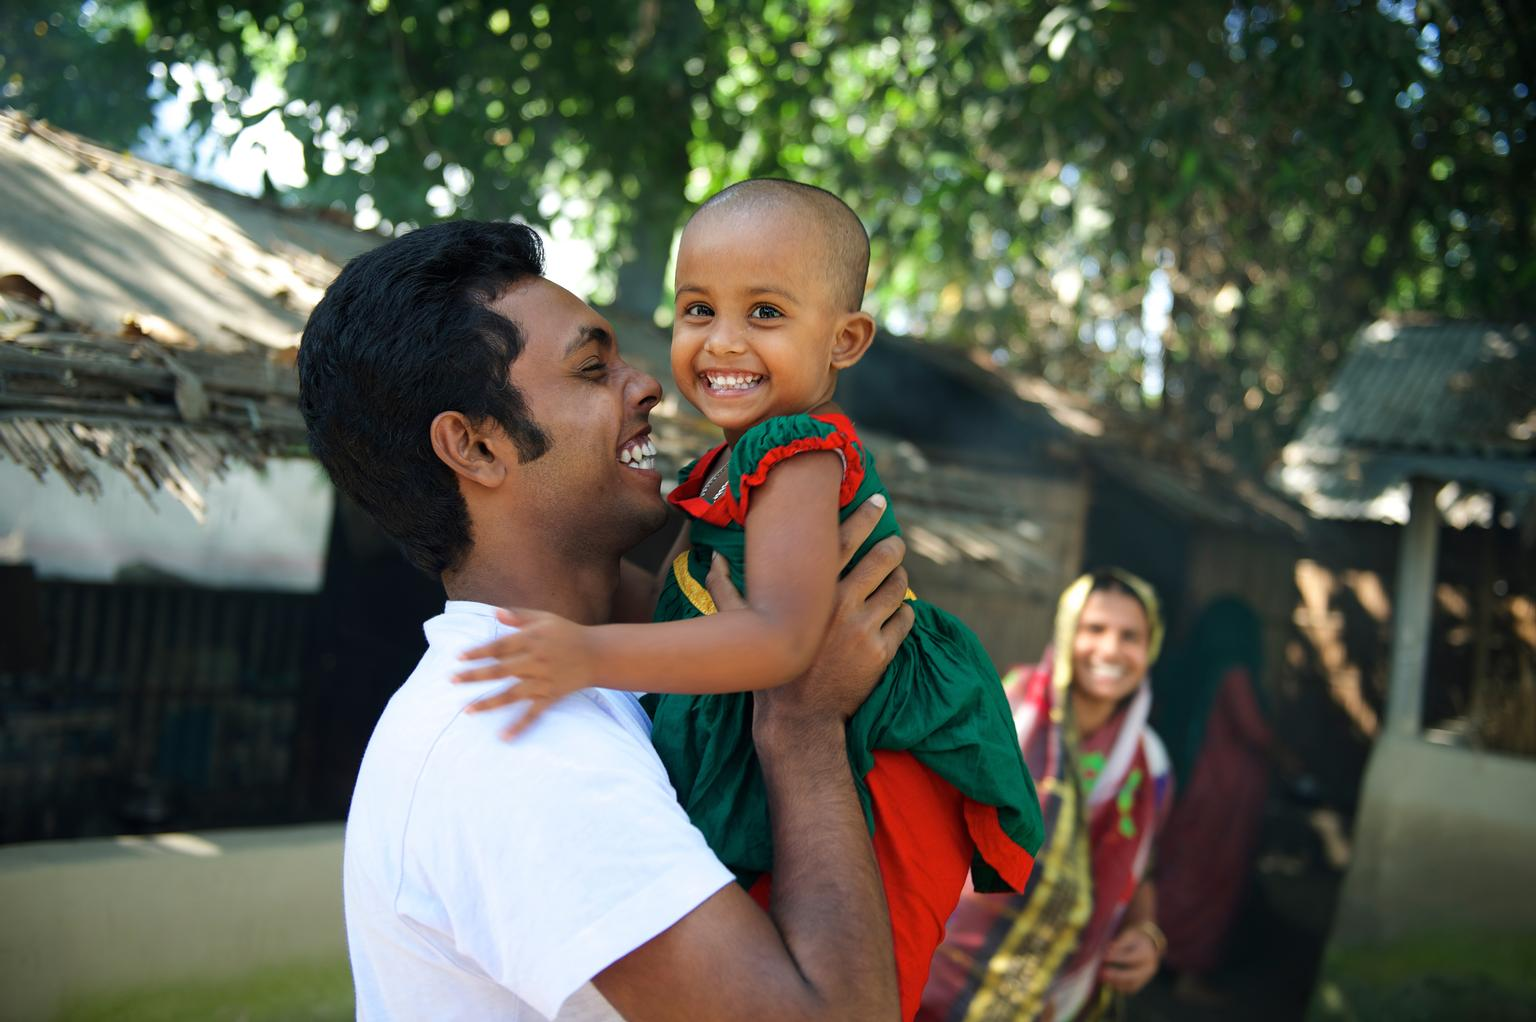 A young girl from Bangladesh smiles as her uncle picks her up.